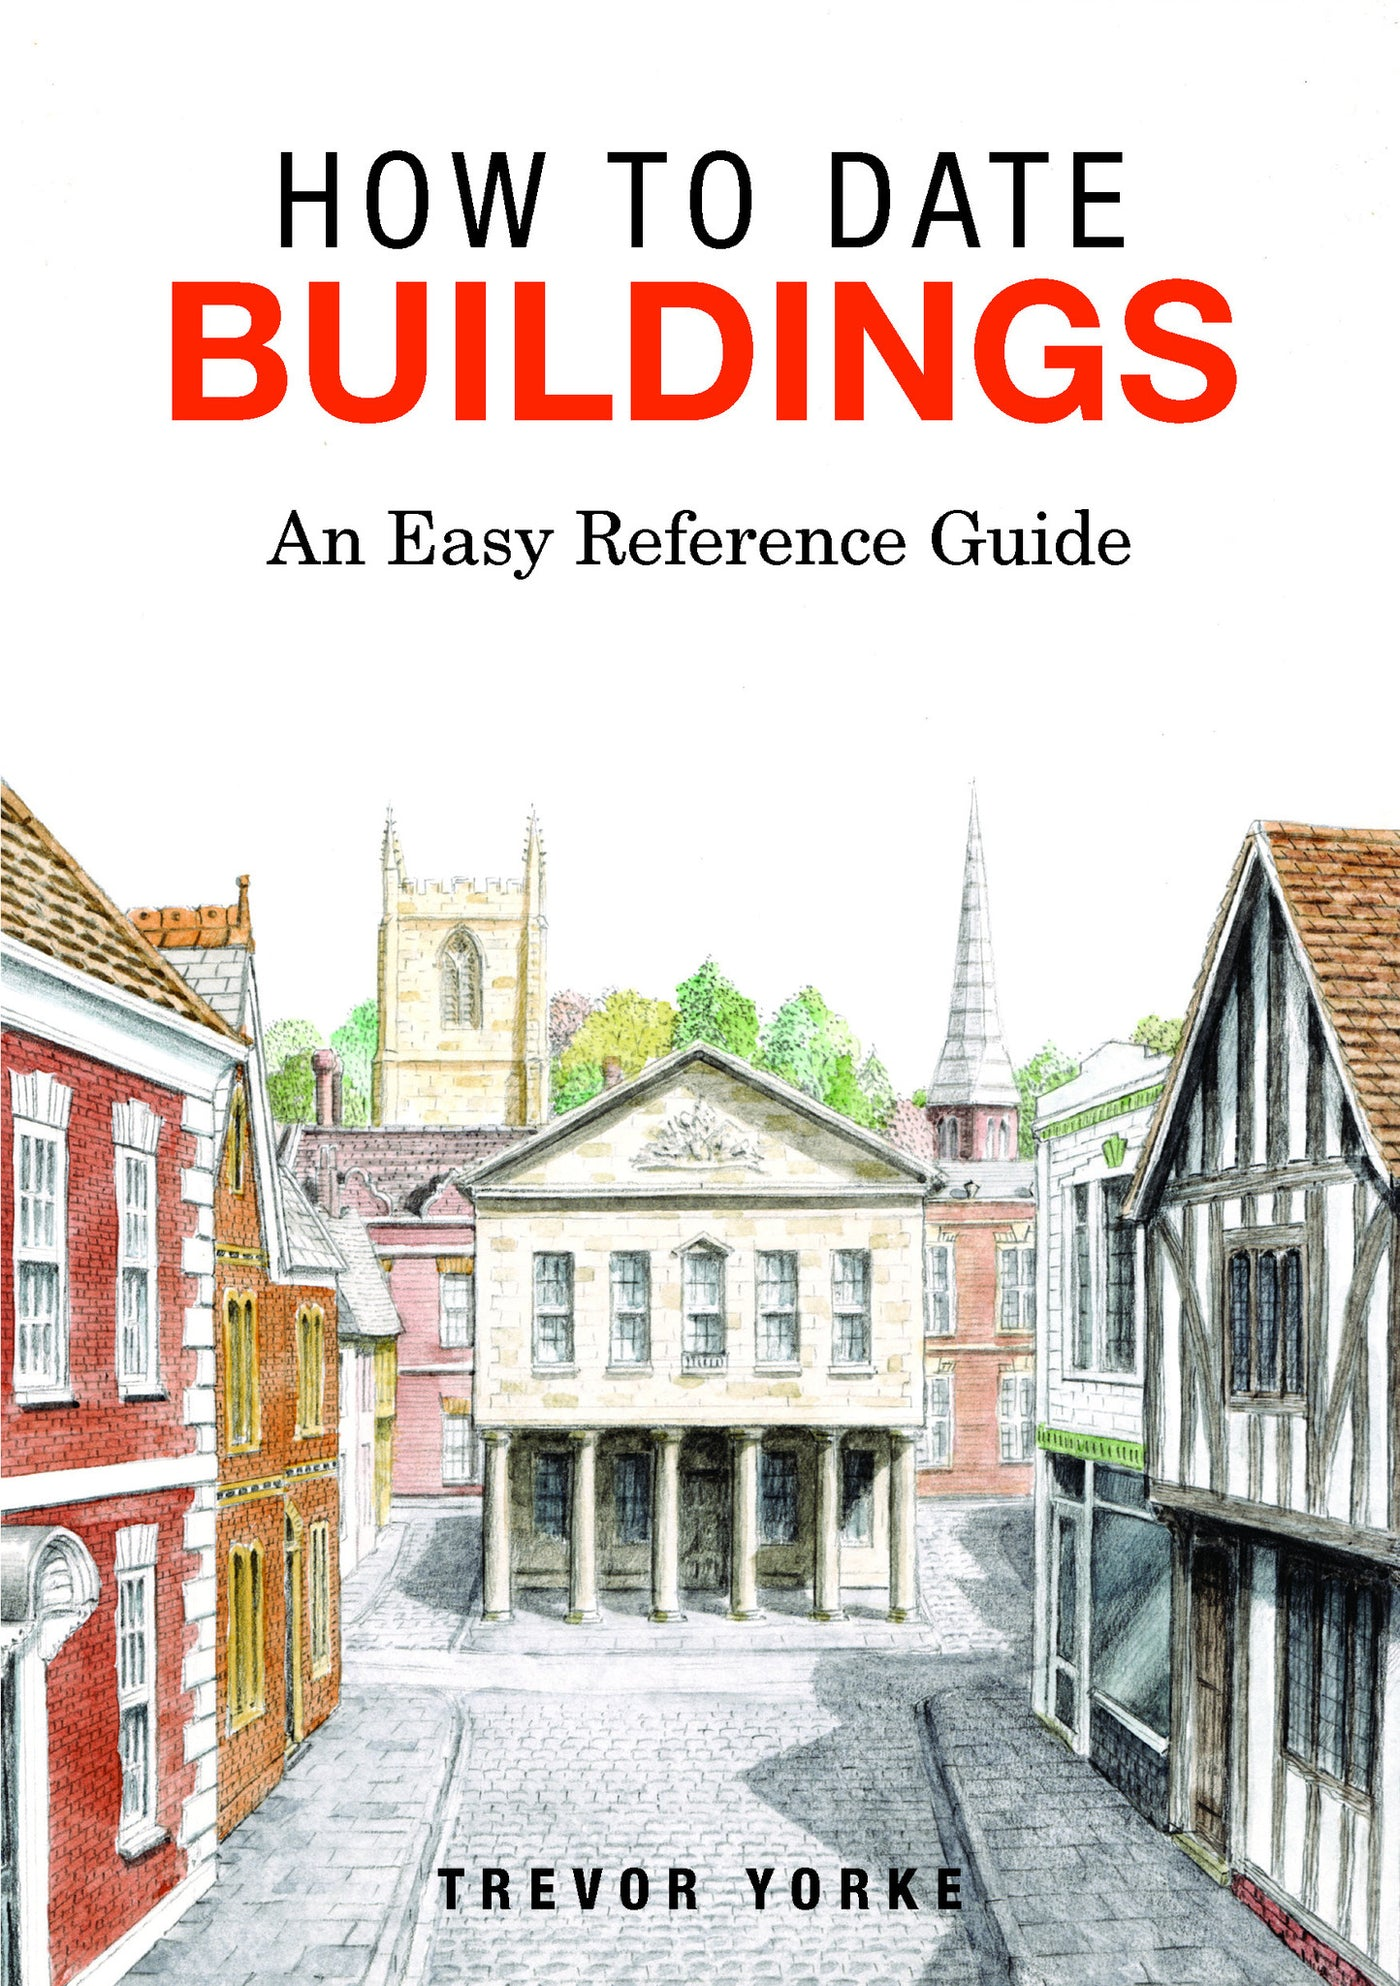 How To Date Buildings An Easy Reference Guide ...